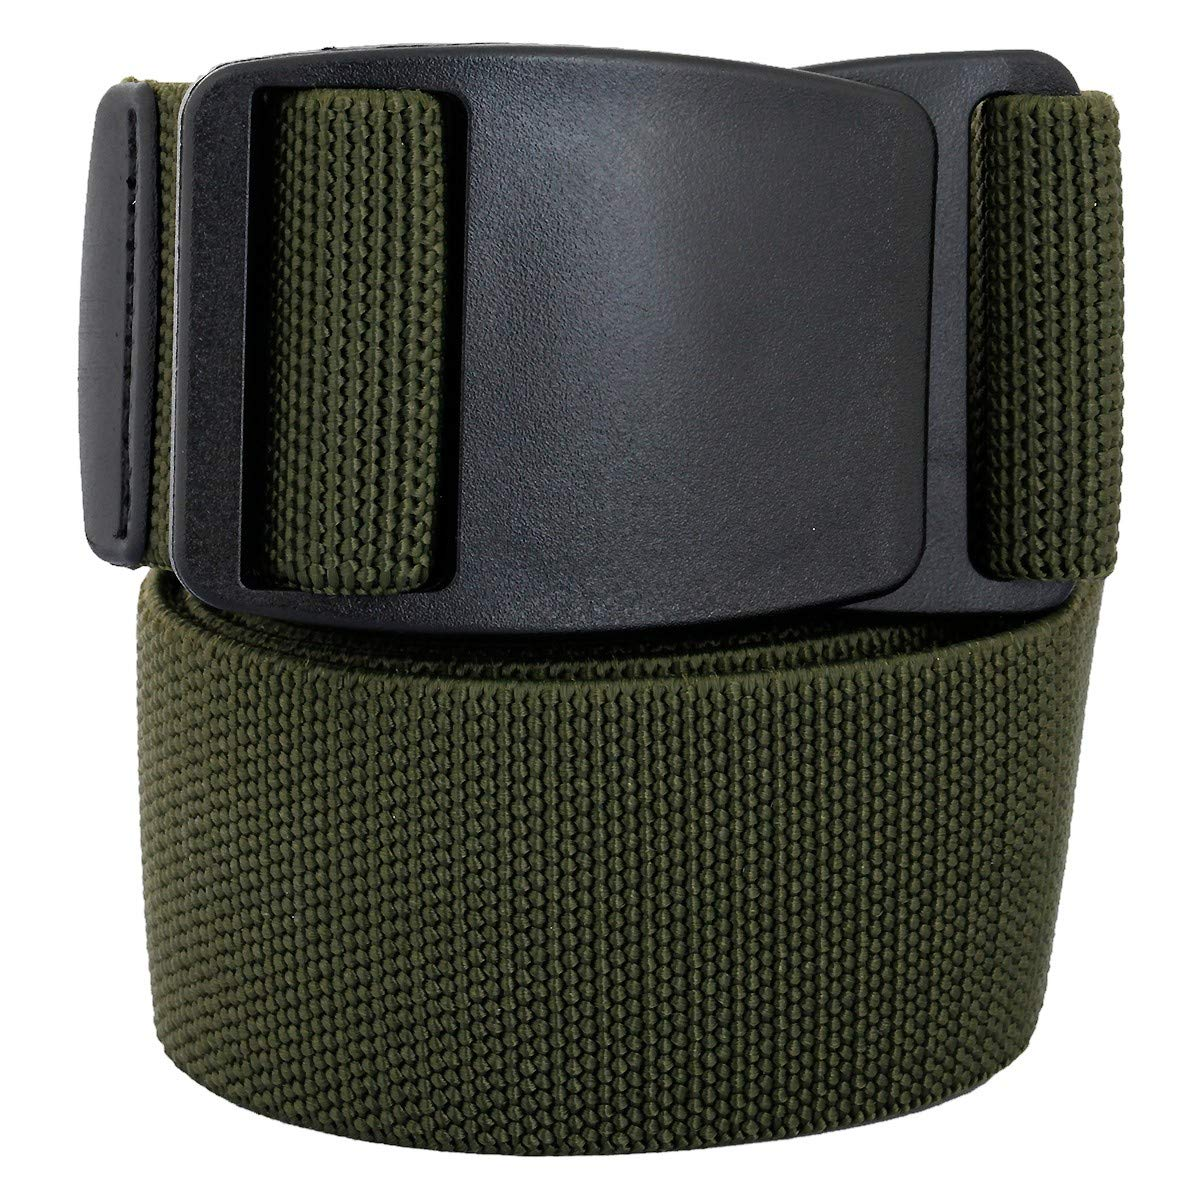 moonsix Tactical Belts for Men, Webbing Duty Military Belt with Plastic Buckle,Elastic,Army Green